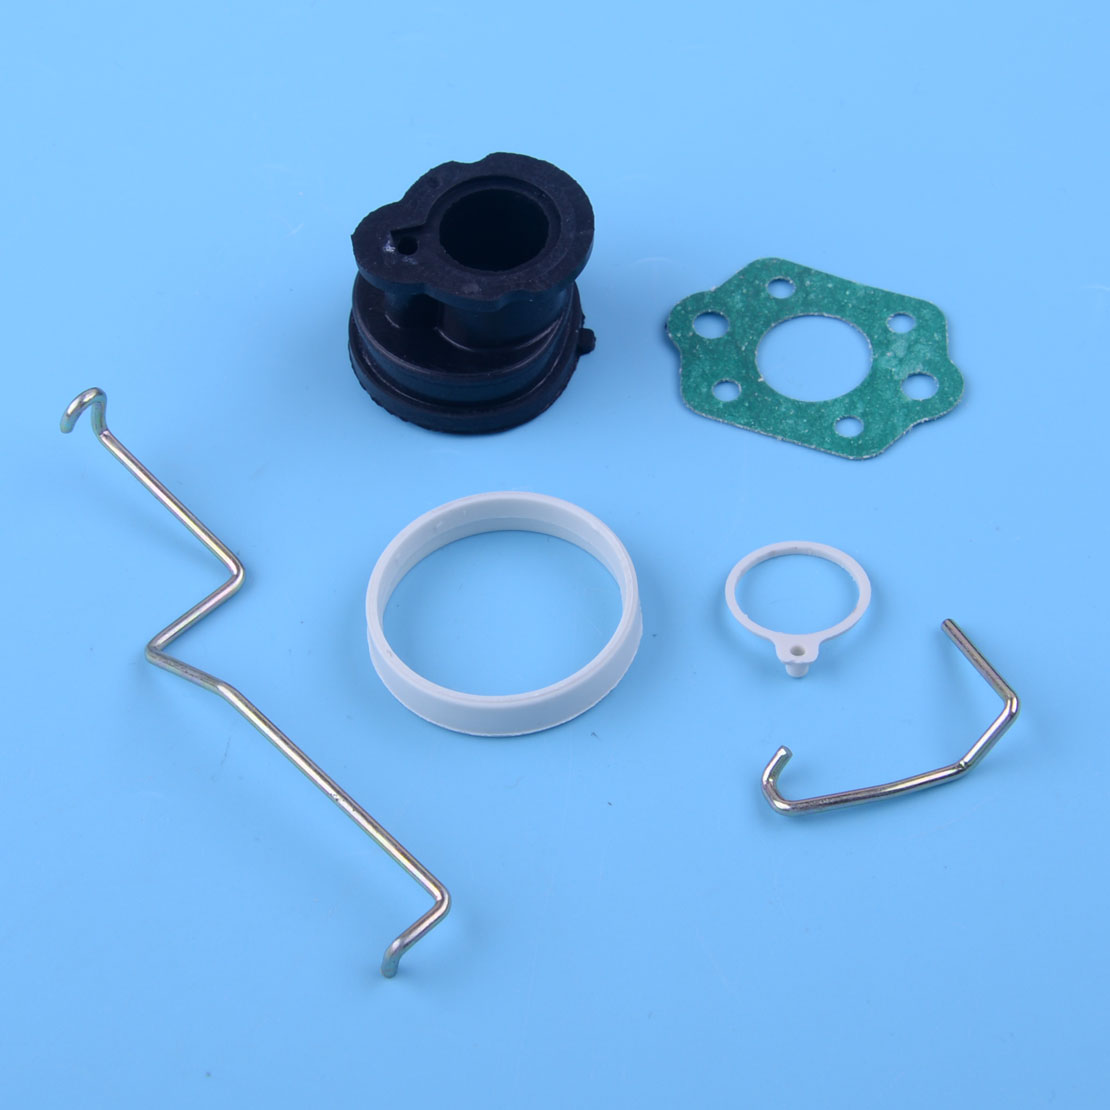 LEATOSK 6pcs/Set Throttle Lever & Choke Rod & Intake Manifold &Gasket 1130 185 2000 Fit For STIHL MS180 MS180C MS170 017 018